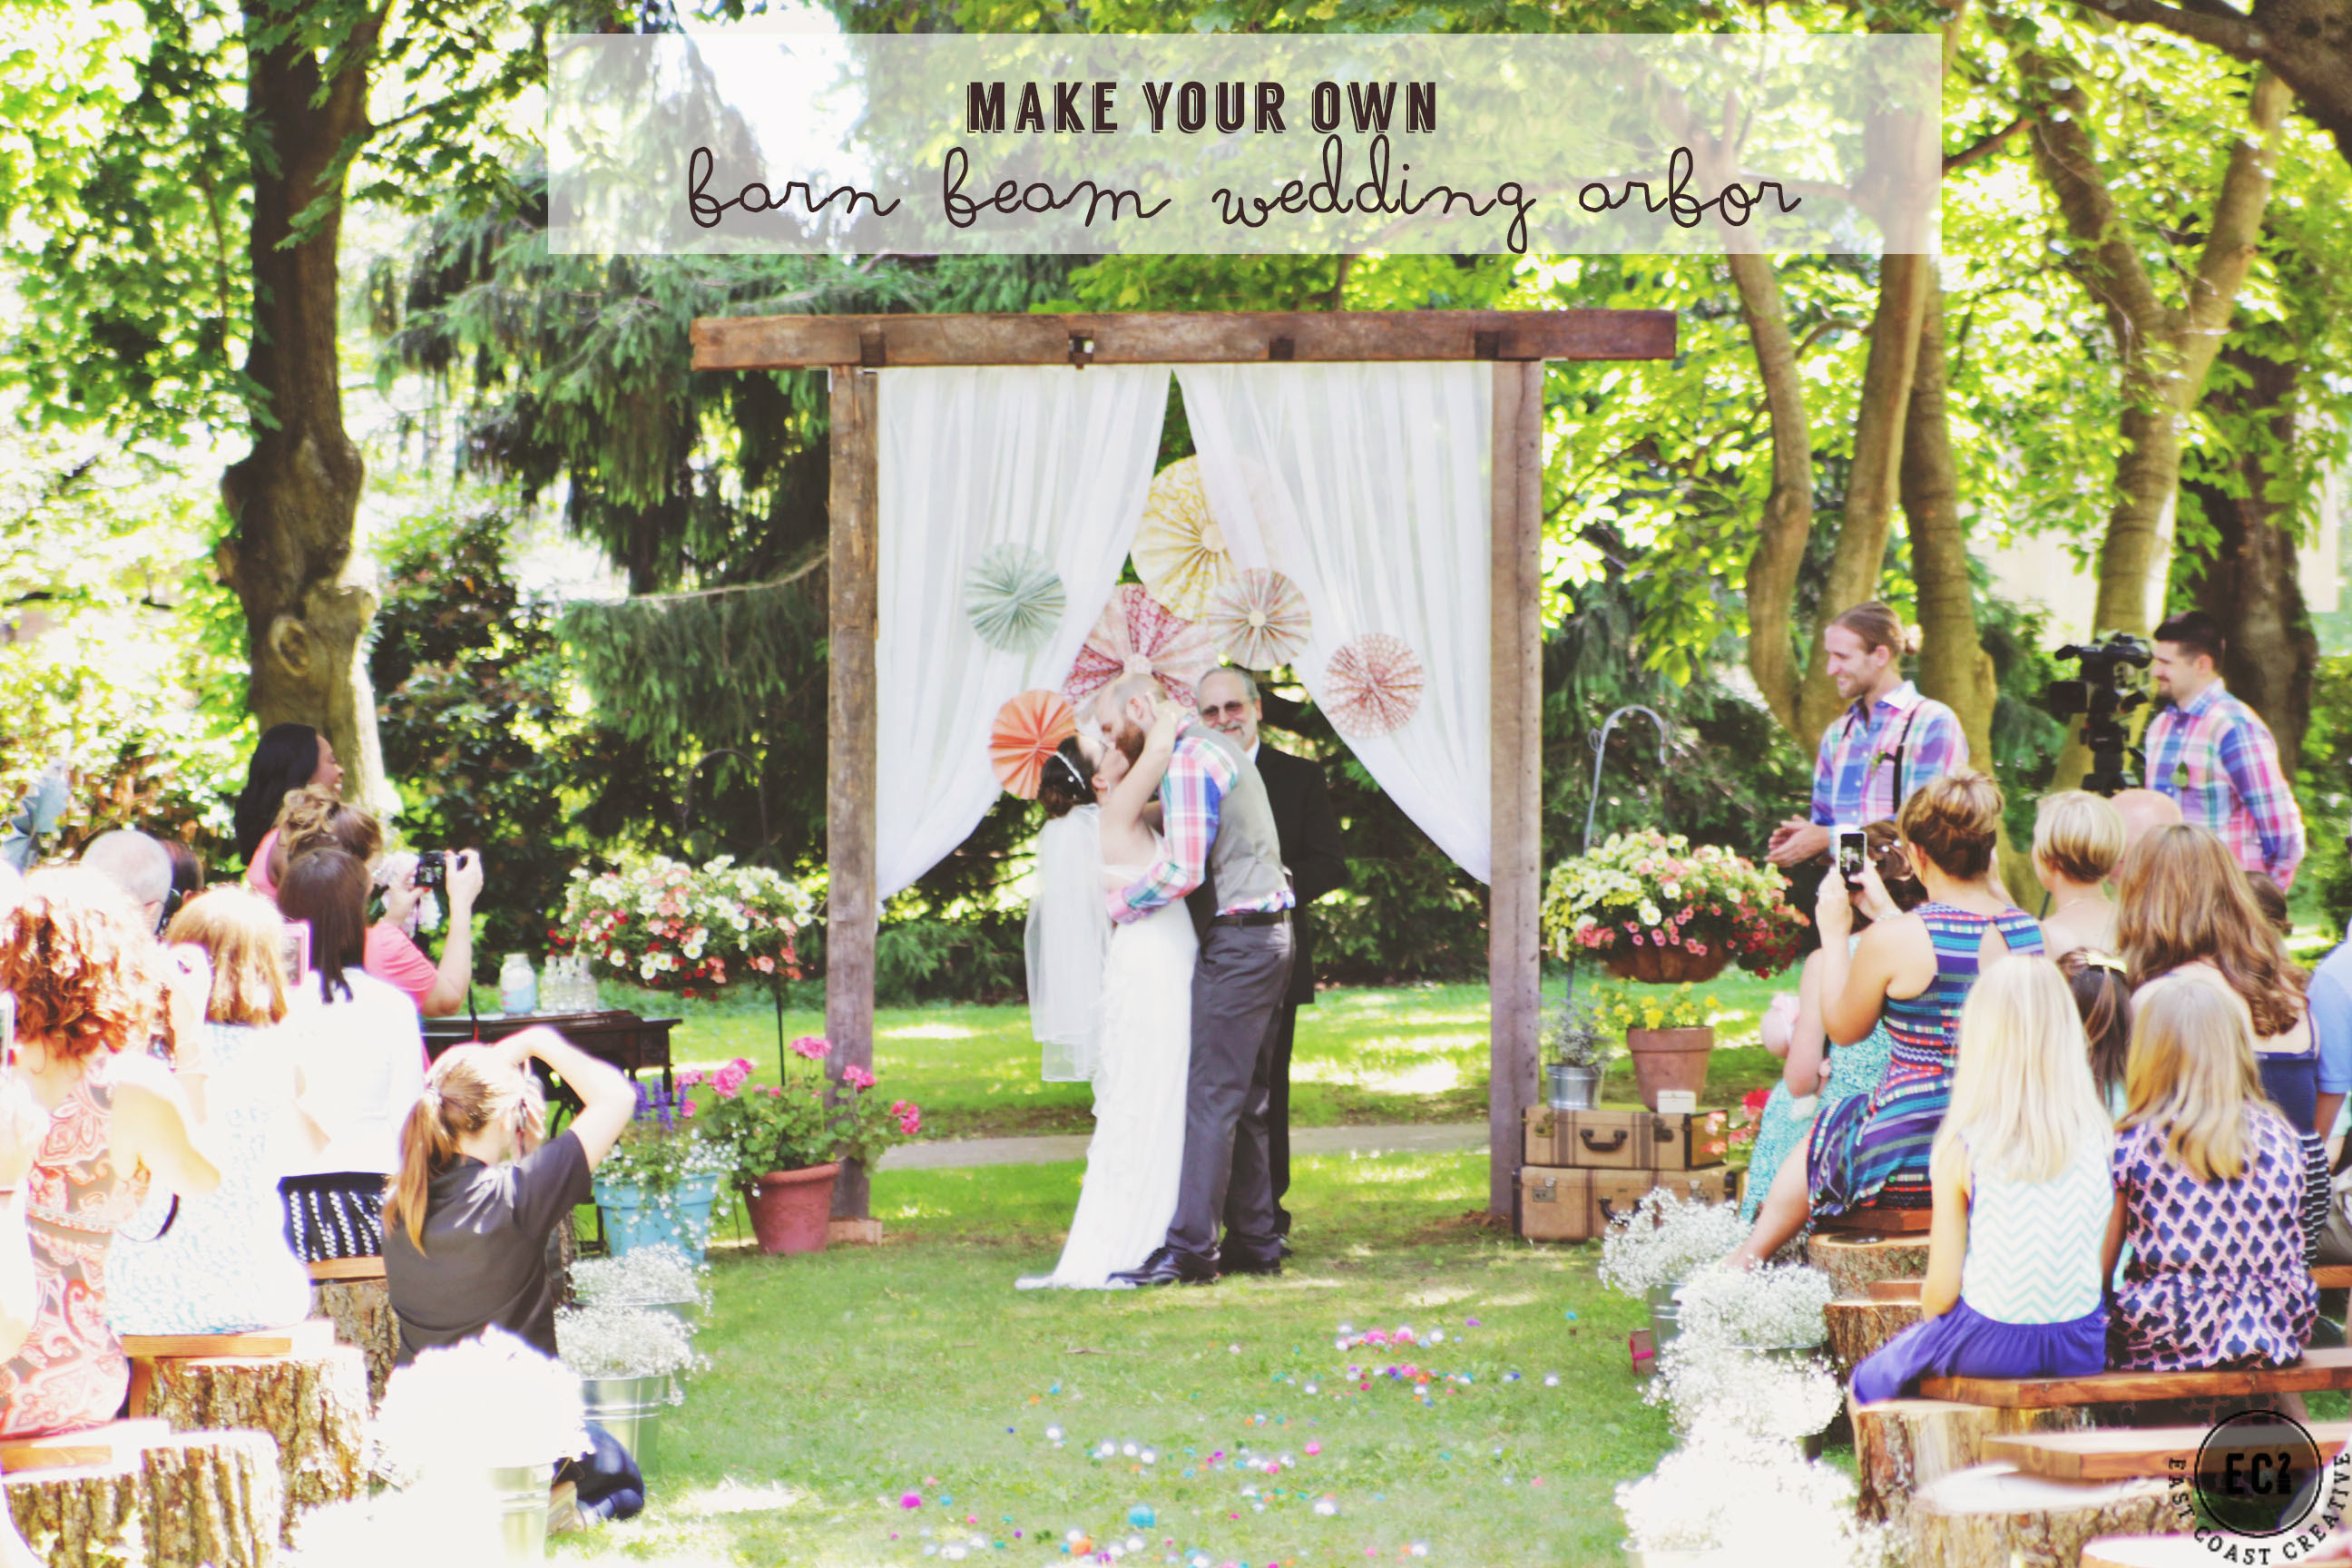 Best ideas about DIY Wedding Arbor . Save or Pin DIY Wedding Tips on a Bud Vintage Inspired Backyard Now.